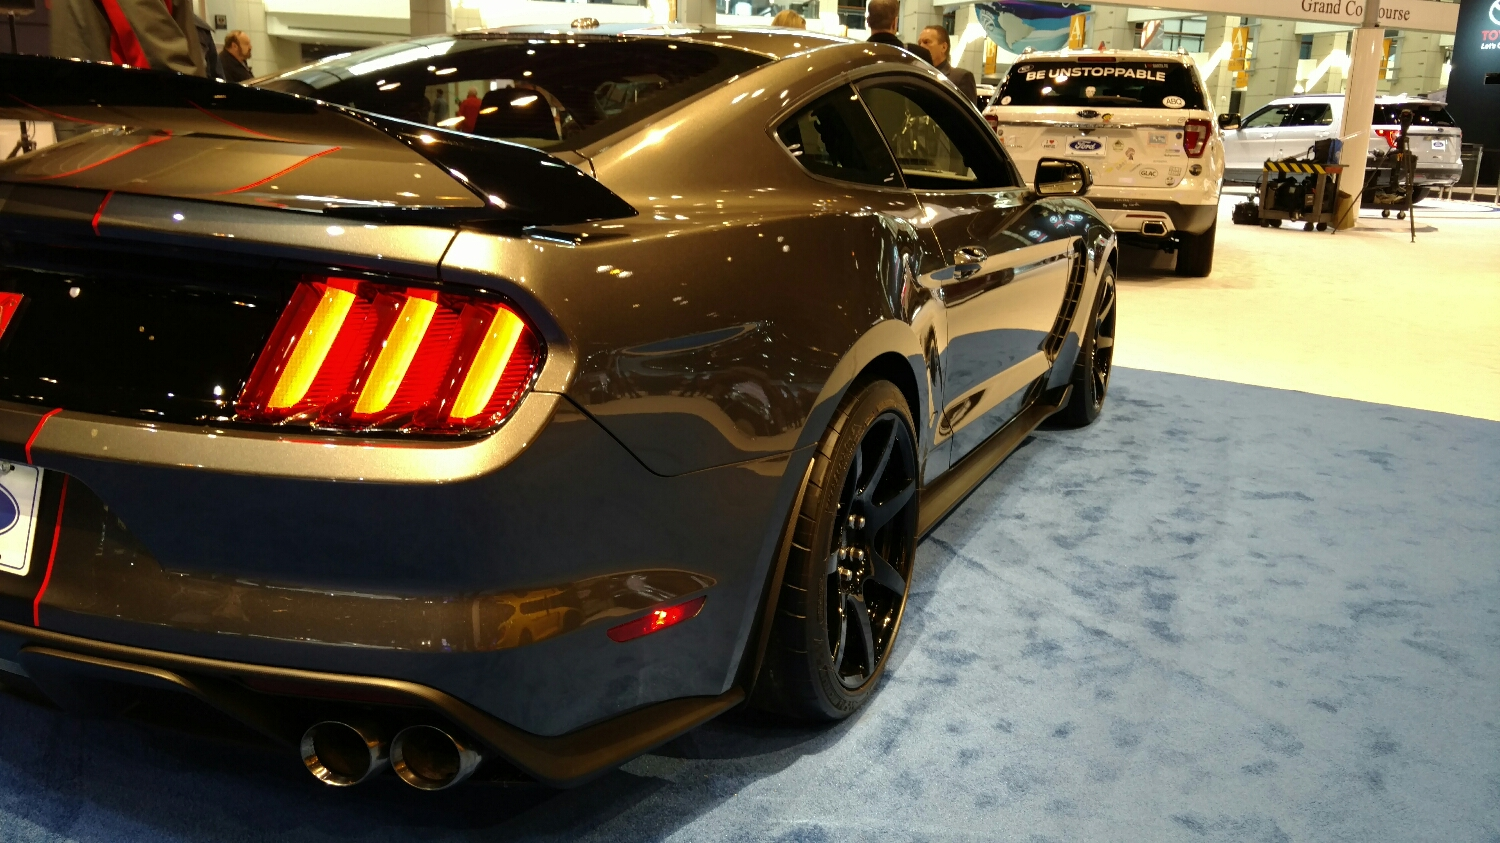 Its the best mustang I've ever seen